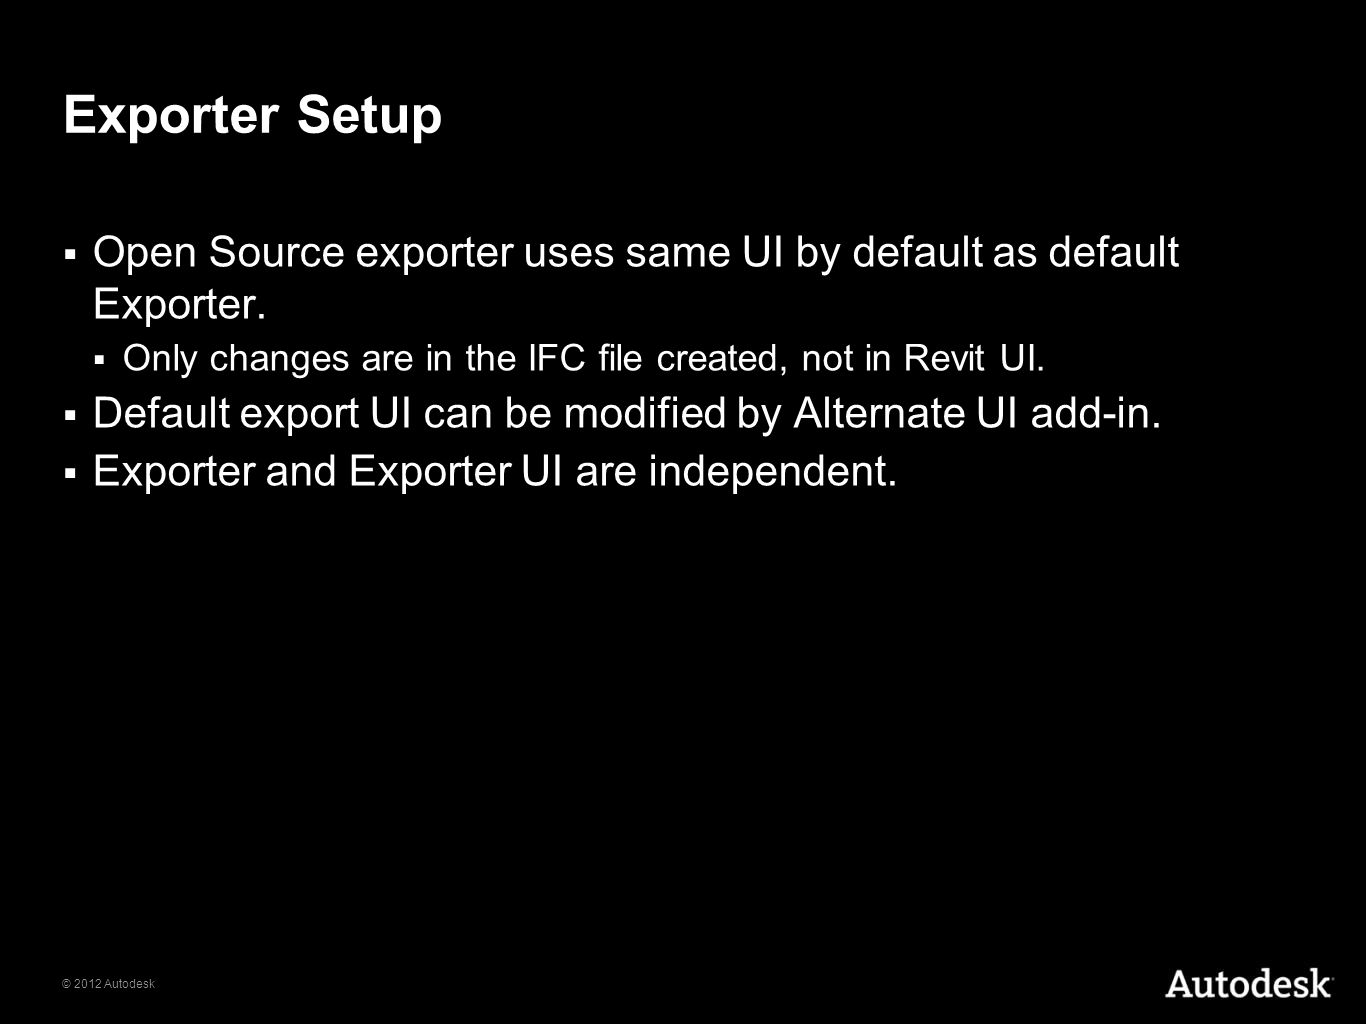 Exporter Setup Open Source exporter uses same UI by default as default Exporter. Only changes are in the IFC file created, not in Revit UI.